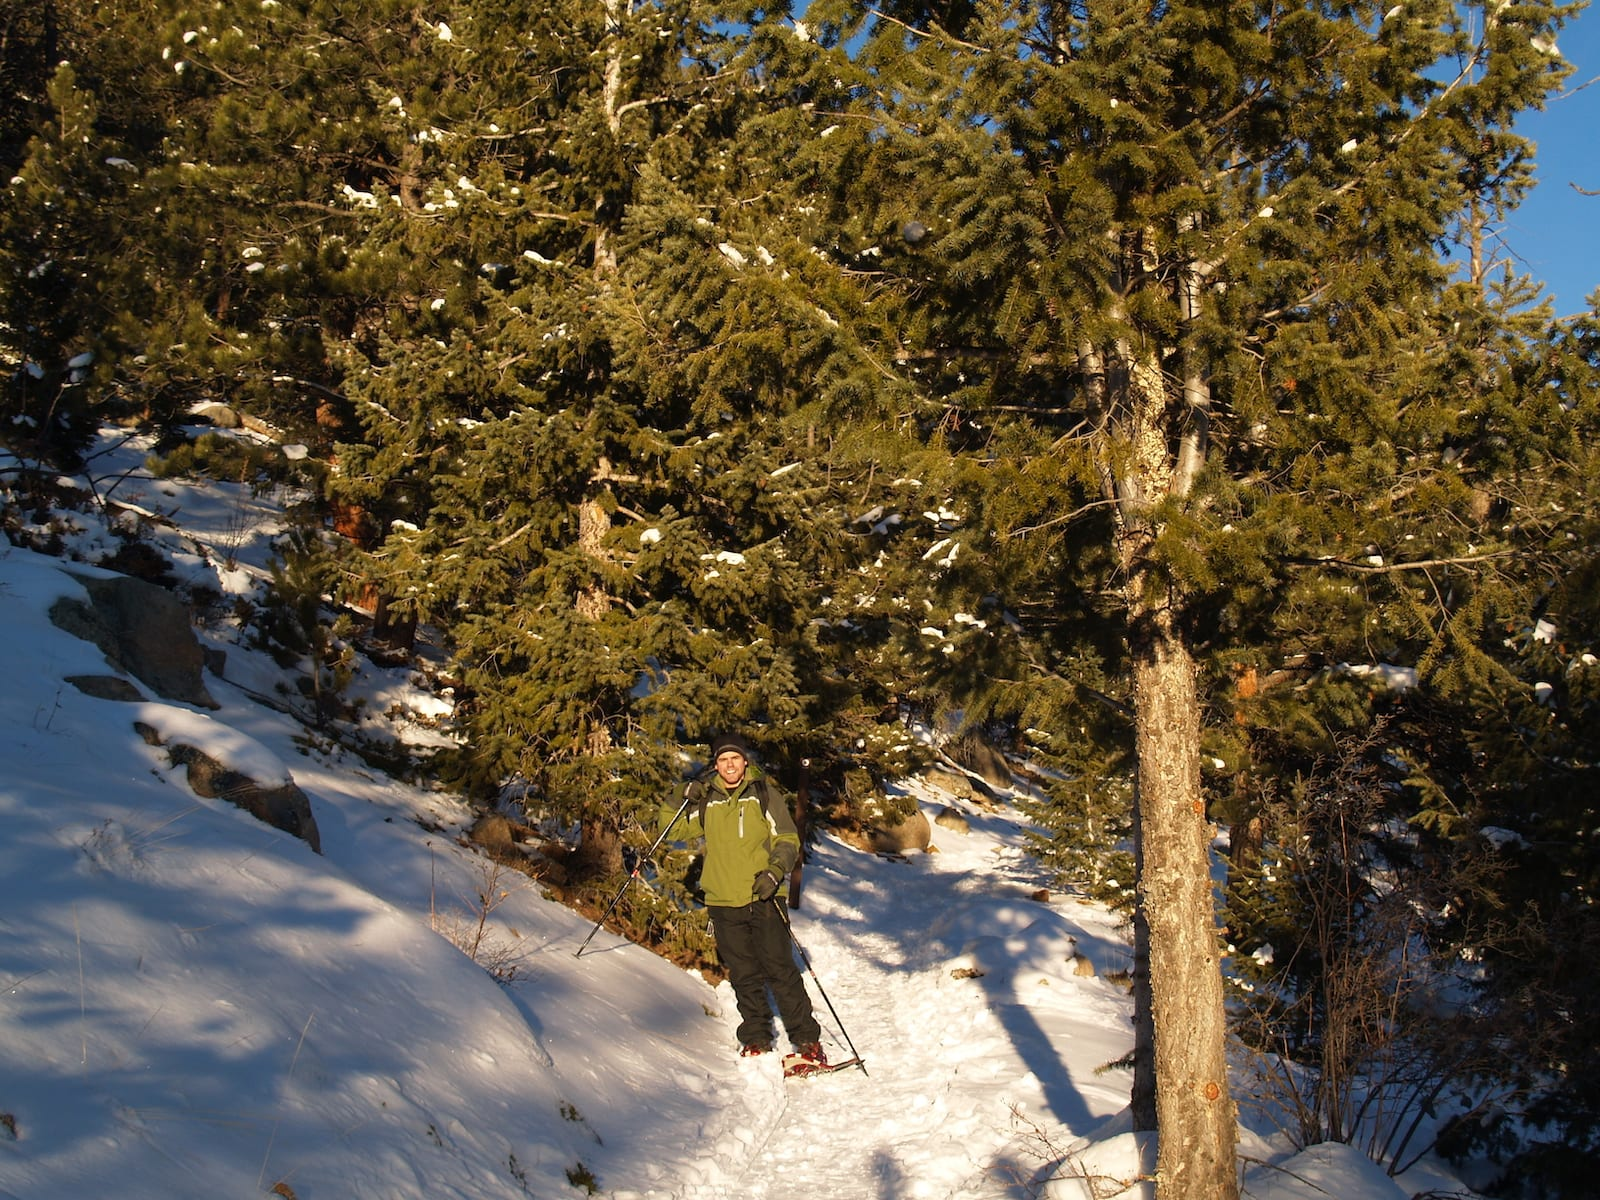 Snowshoeing in Golden Gate Canyon State Park, CO